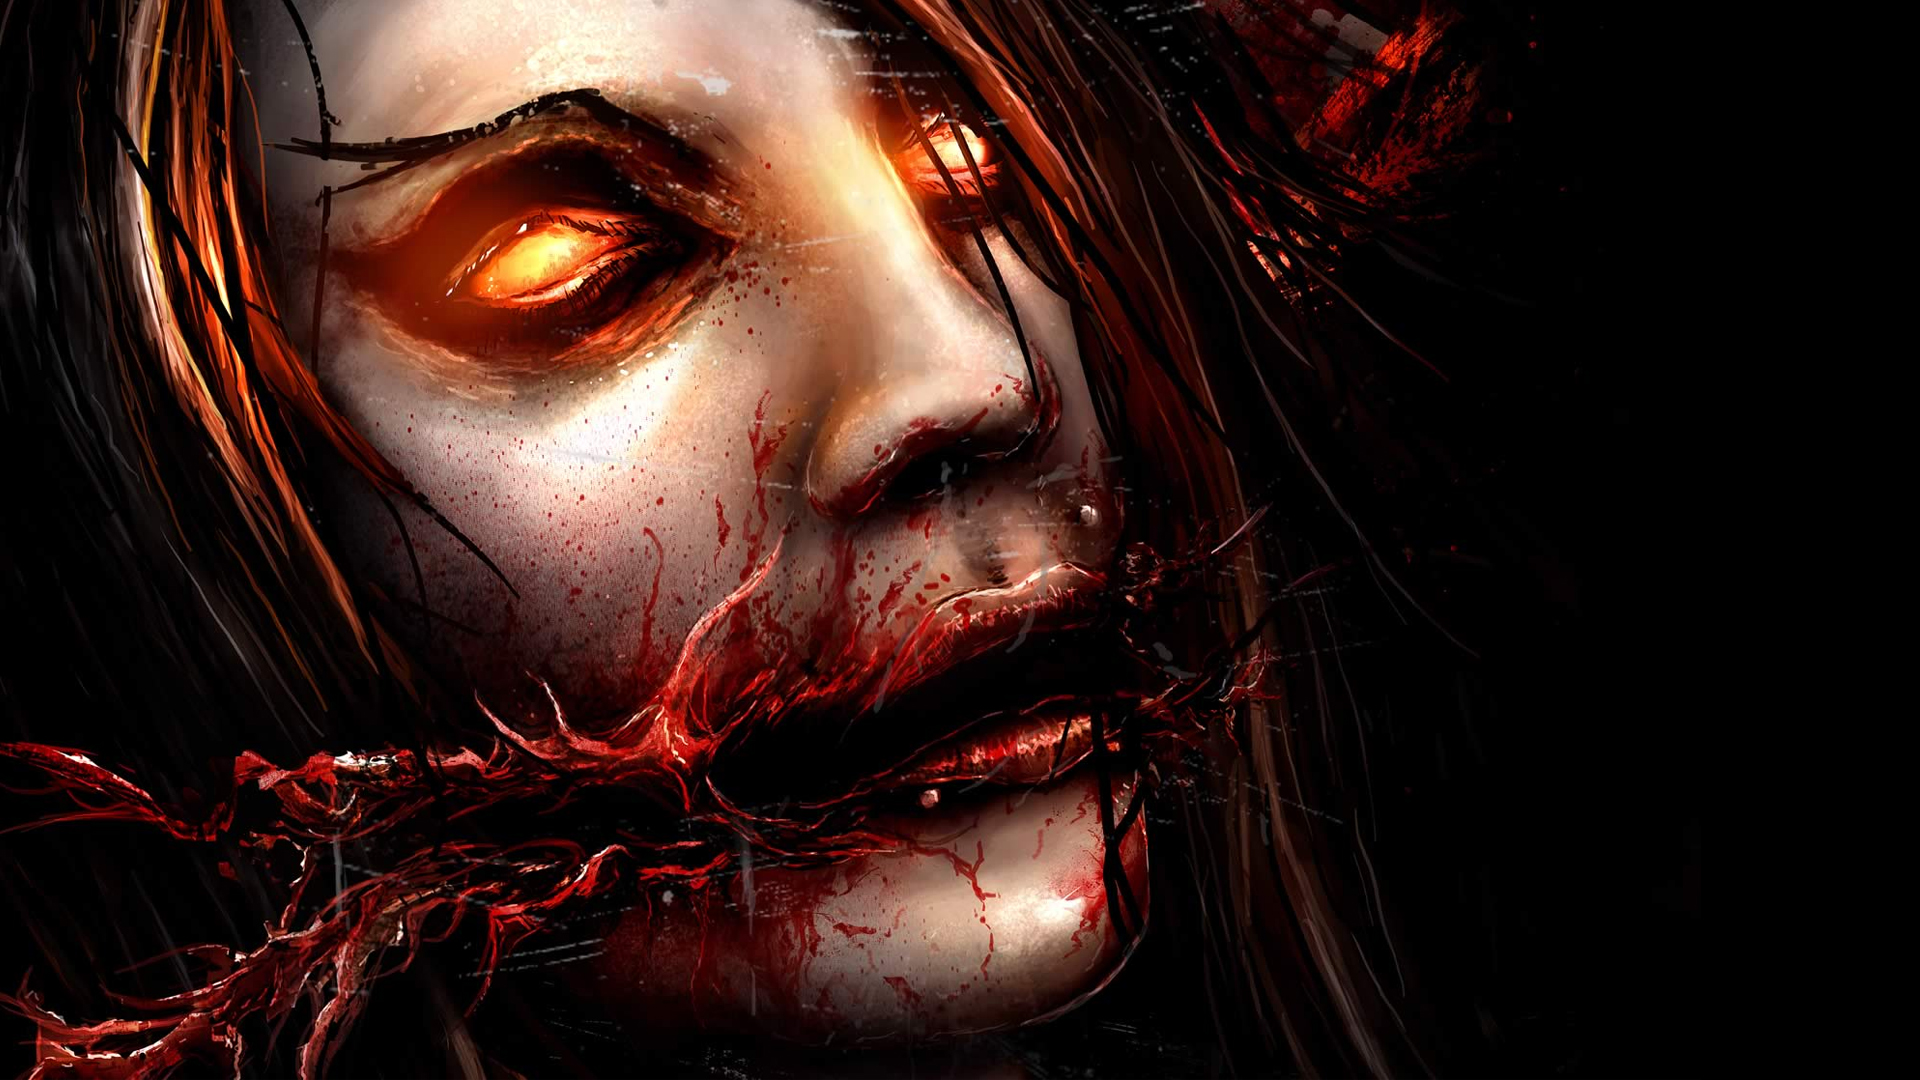 horror macabre demon eyes wallpaper 1920x1080 79500 WallpaperUP 1920x1080